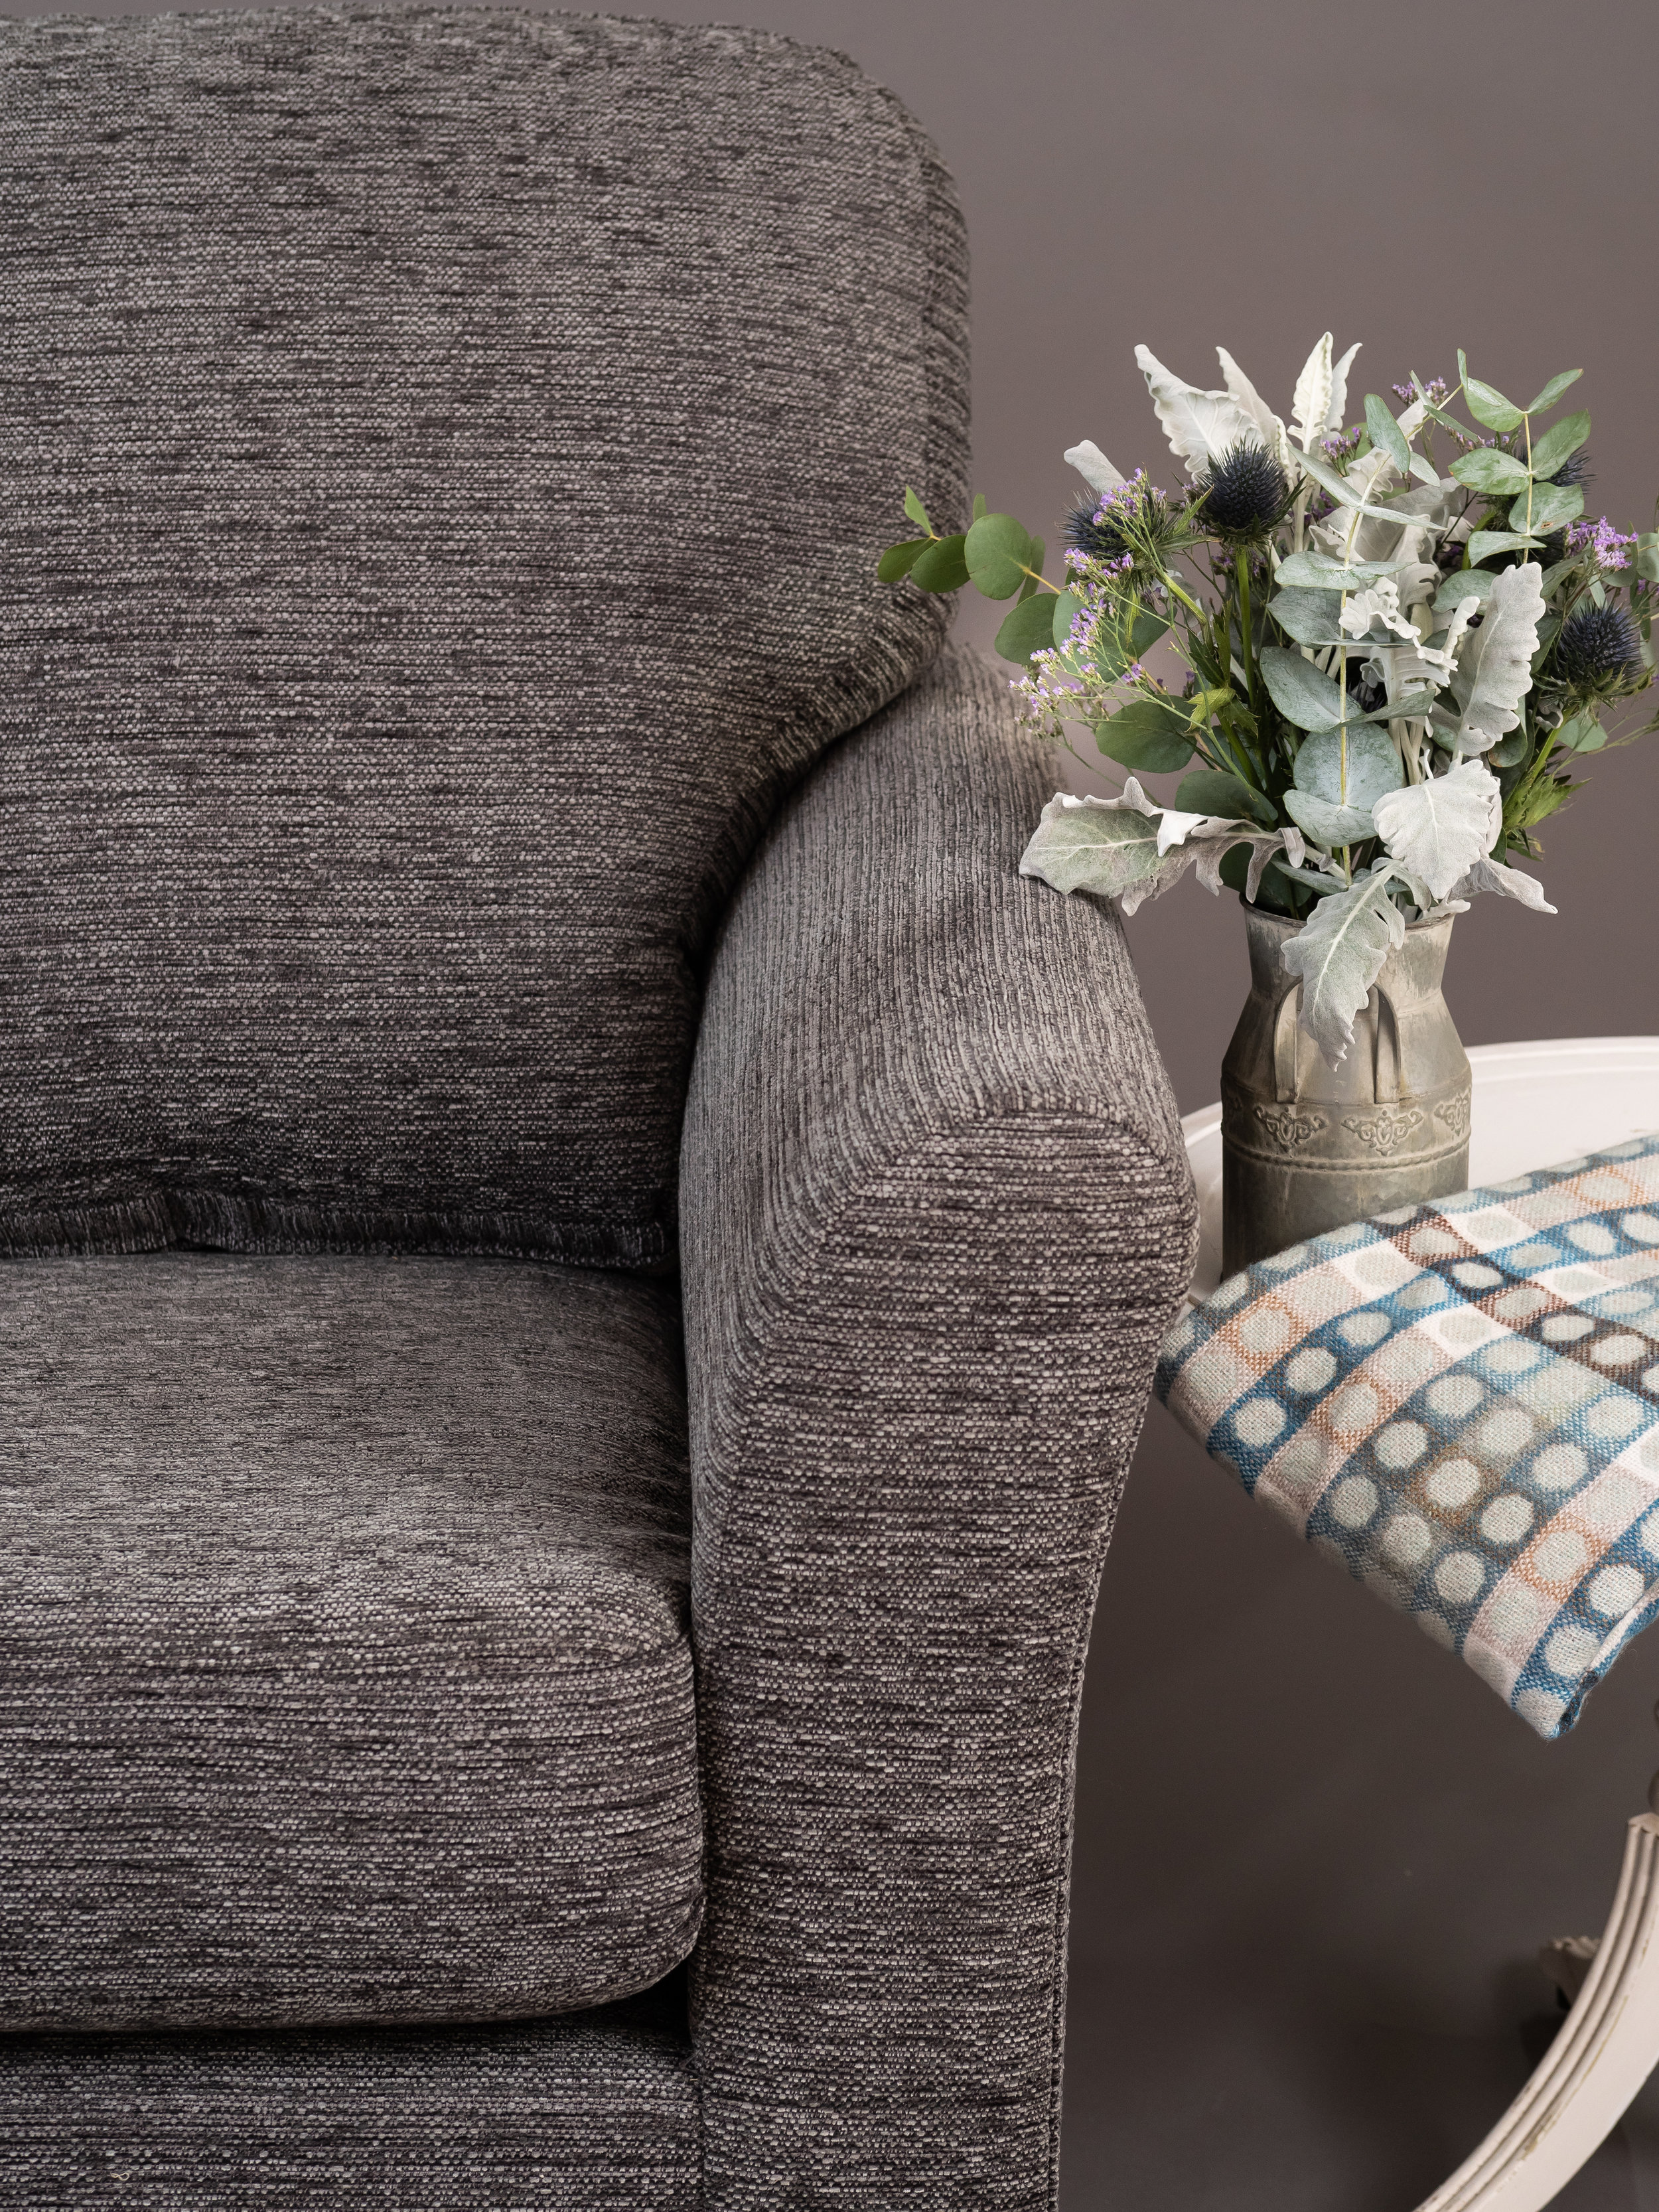 Saymor Furnishers Debbie sofa close up with vase of flowers